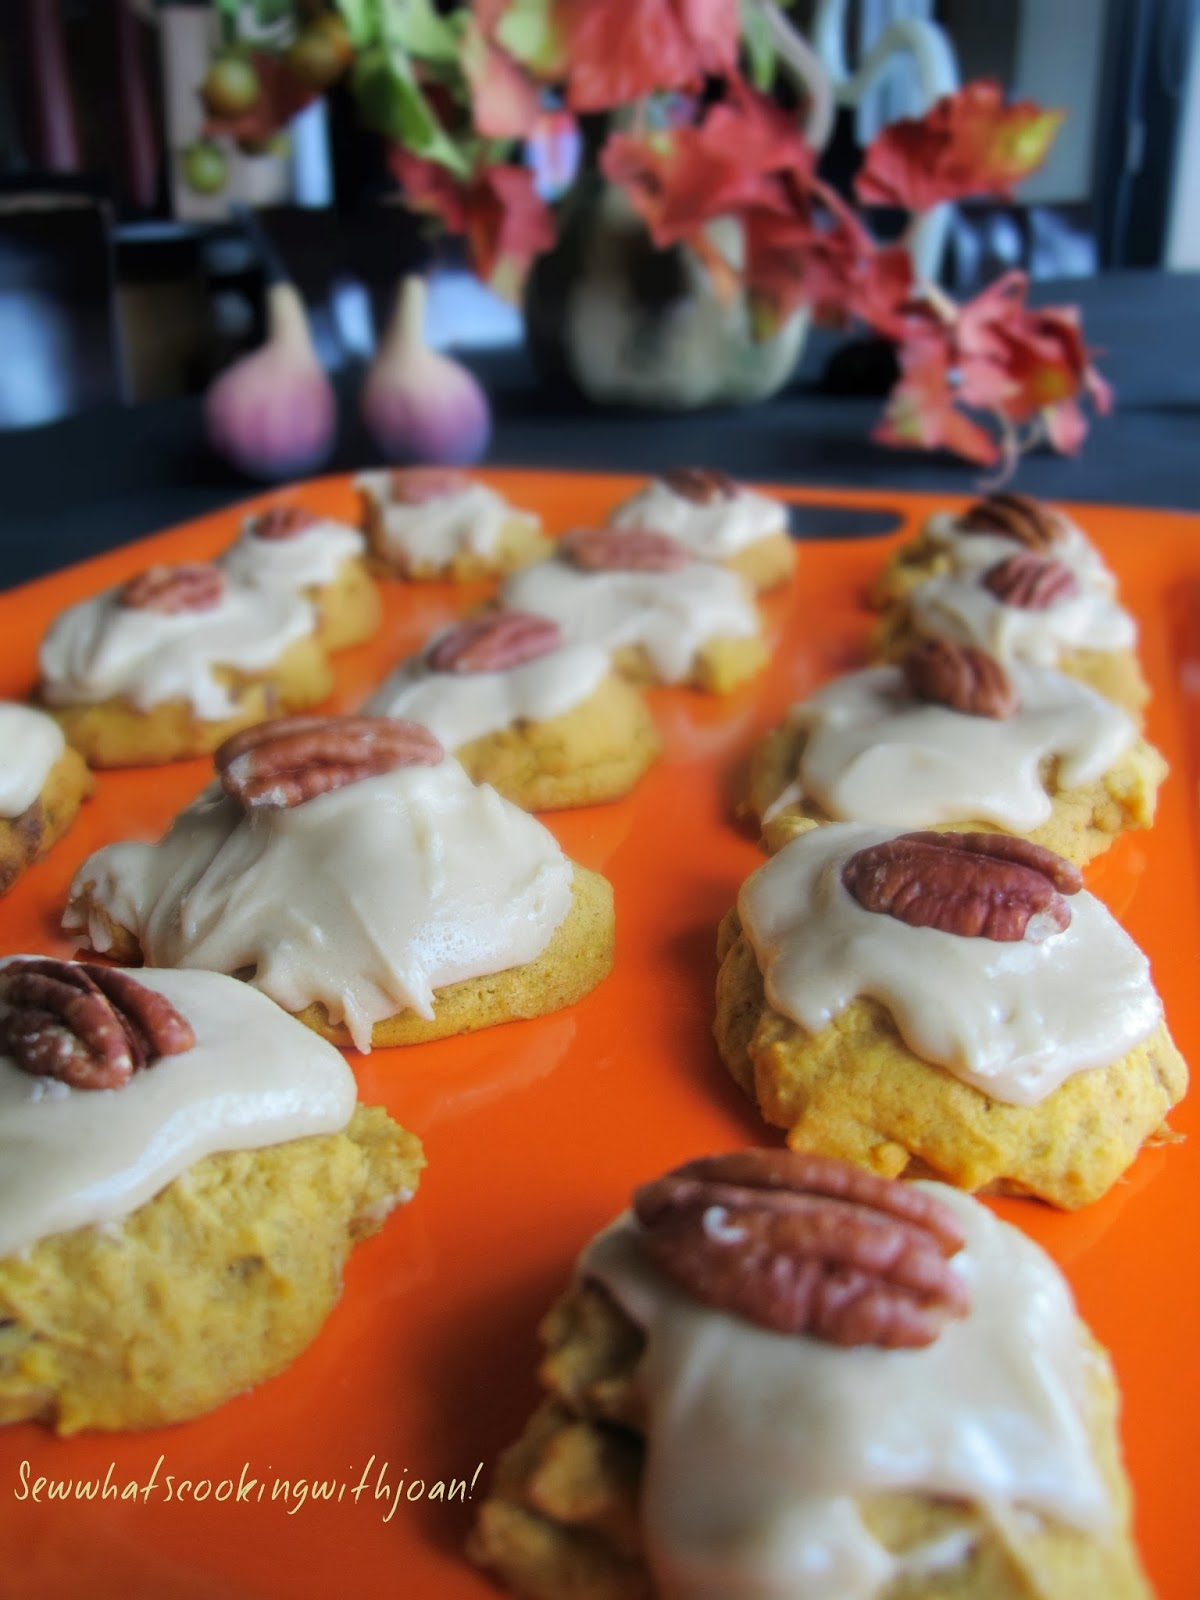 Sew what's cooking with Joan!: Pumpkin Cookies with Penuche frosting!